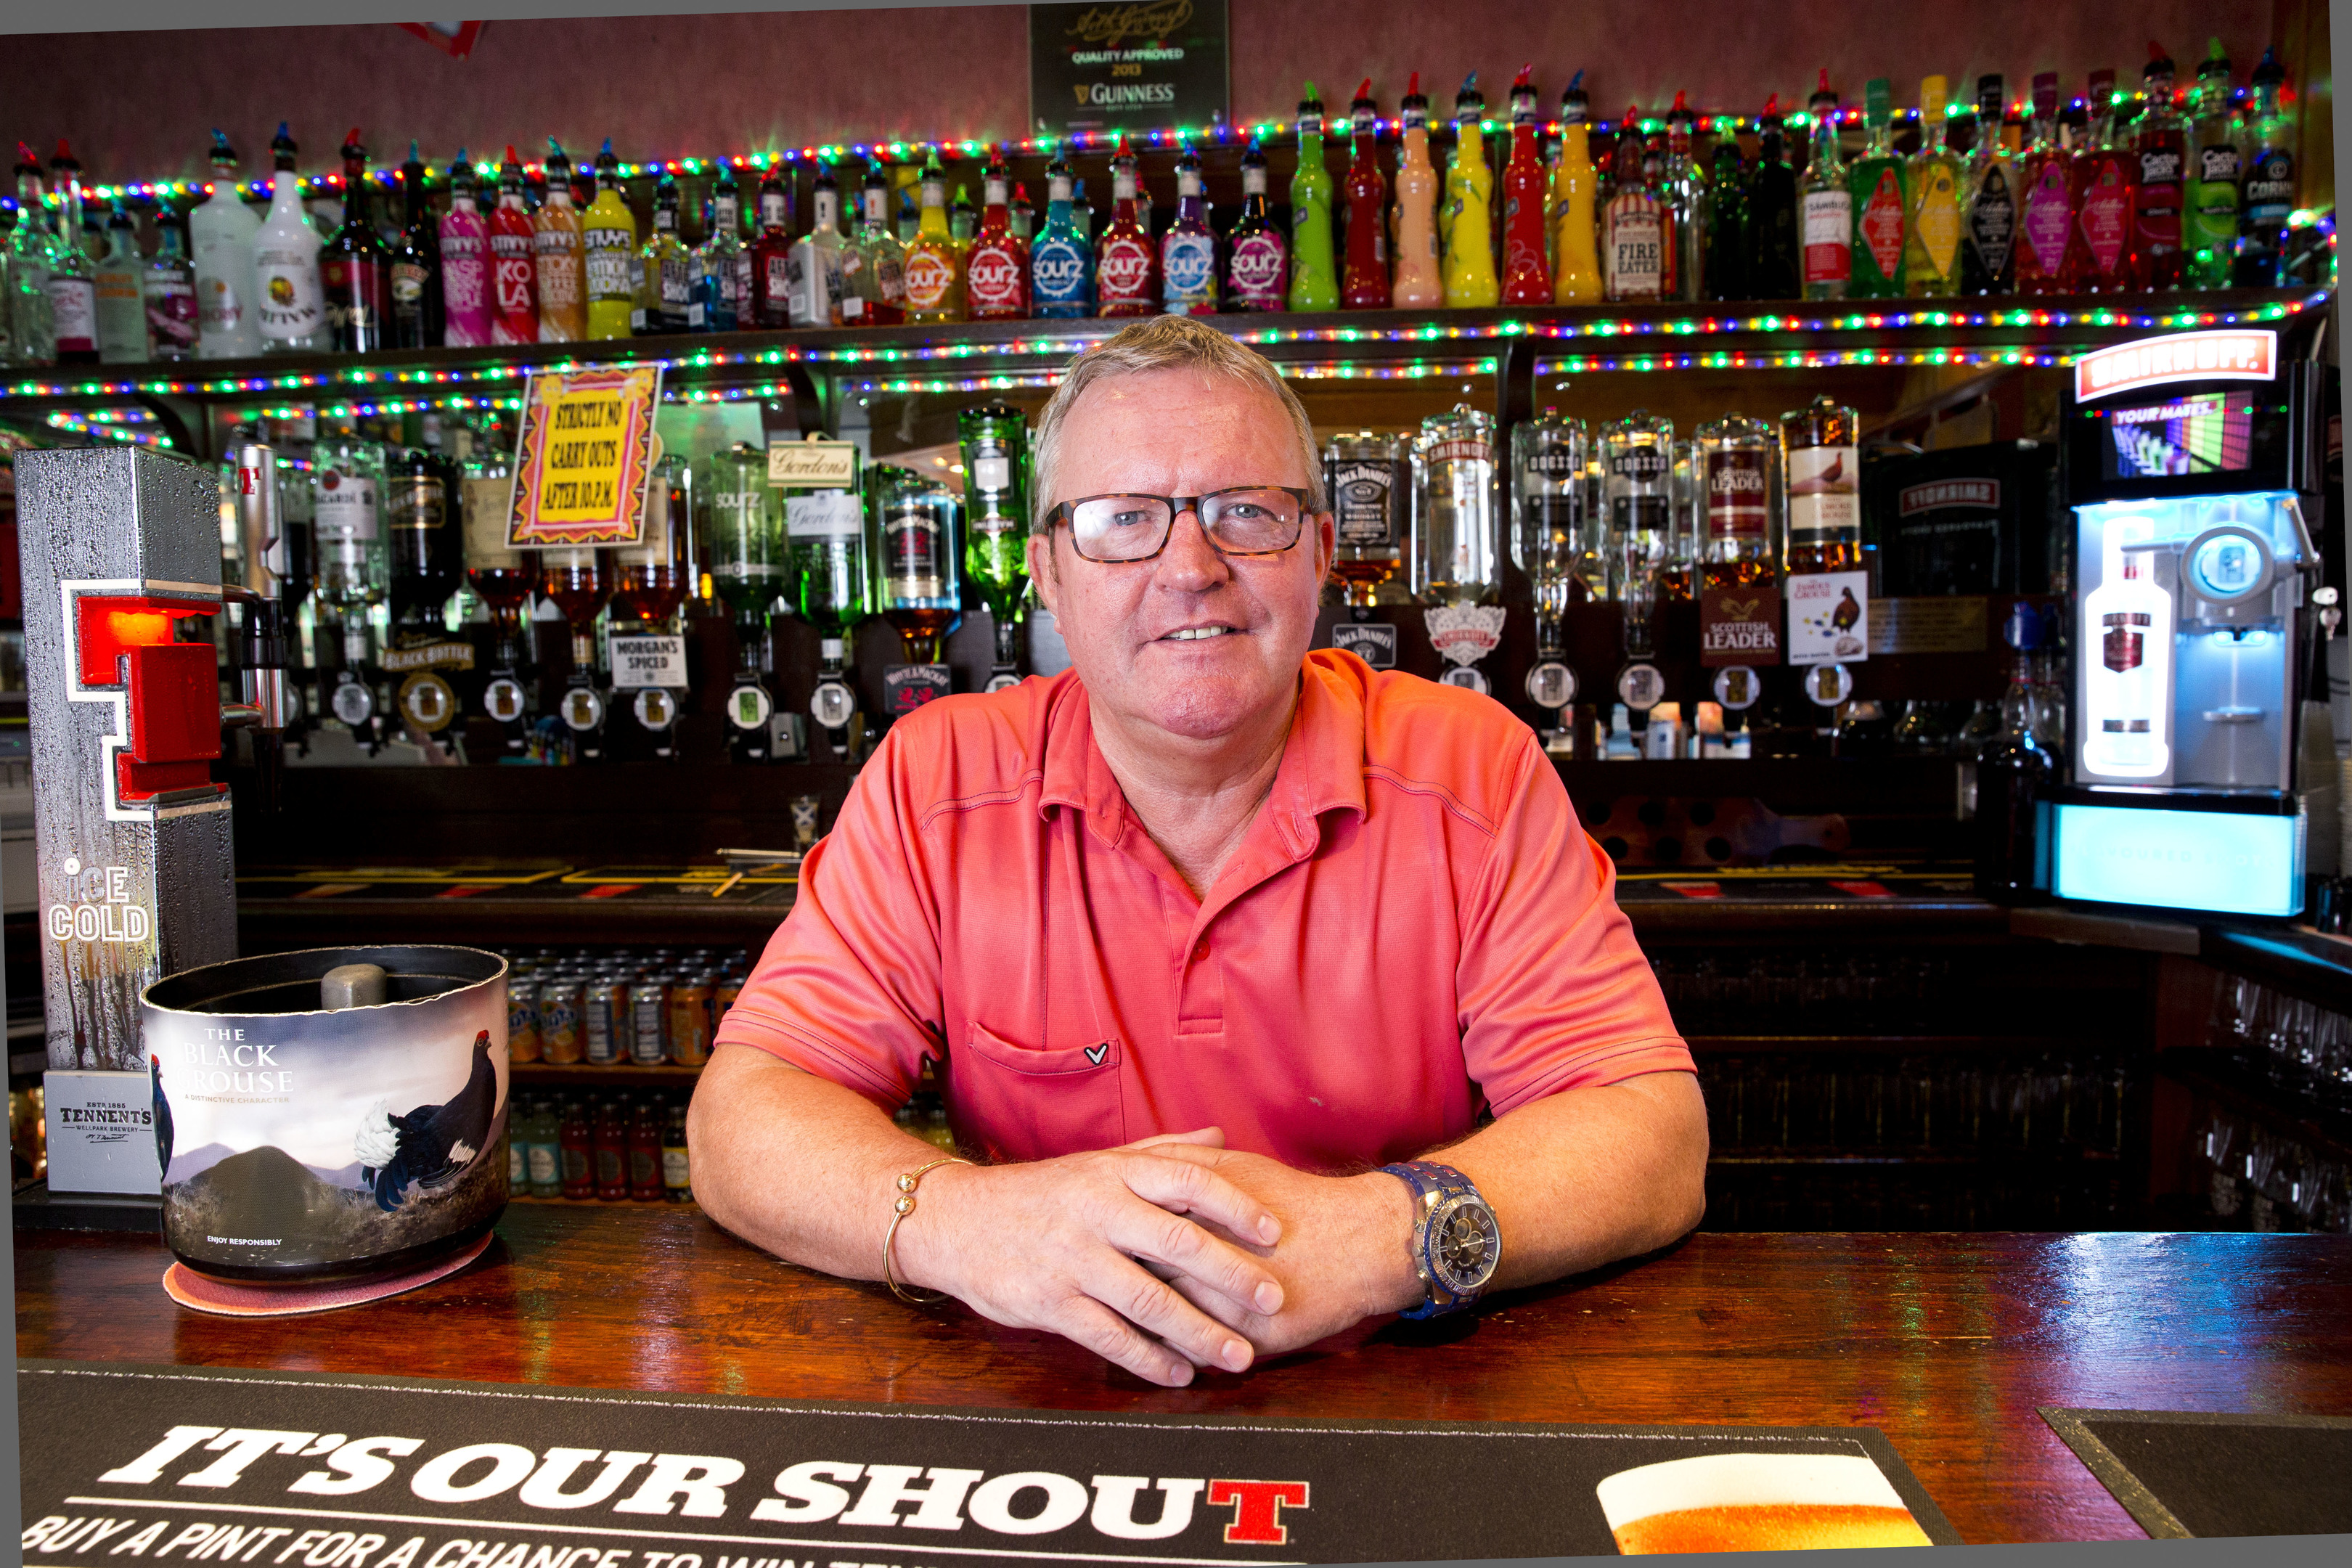 Robert McArdle manages the Clansman bar in Dunoon (James Williamson)